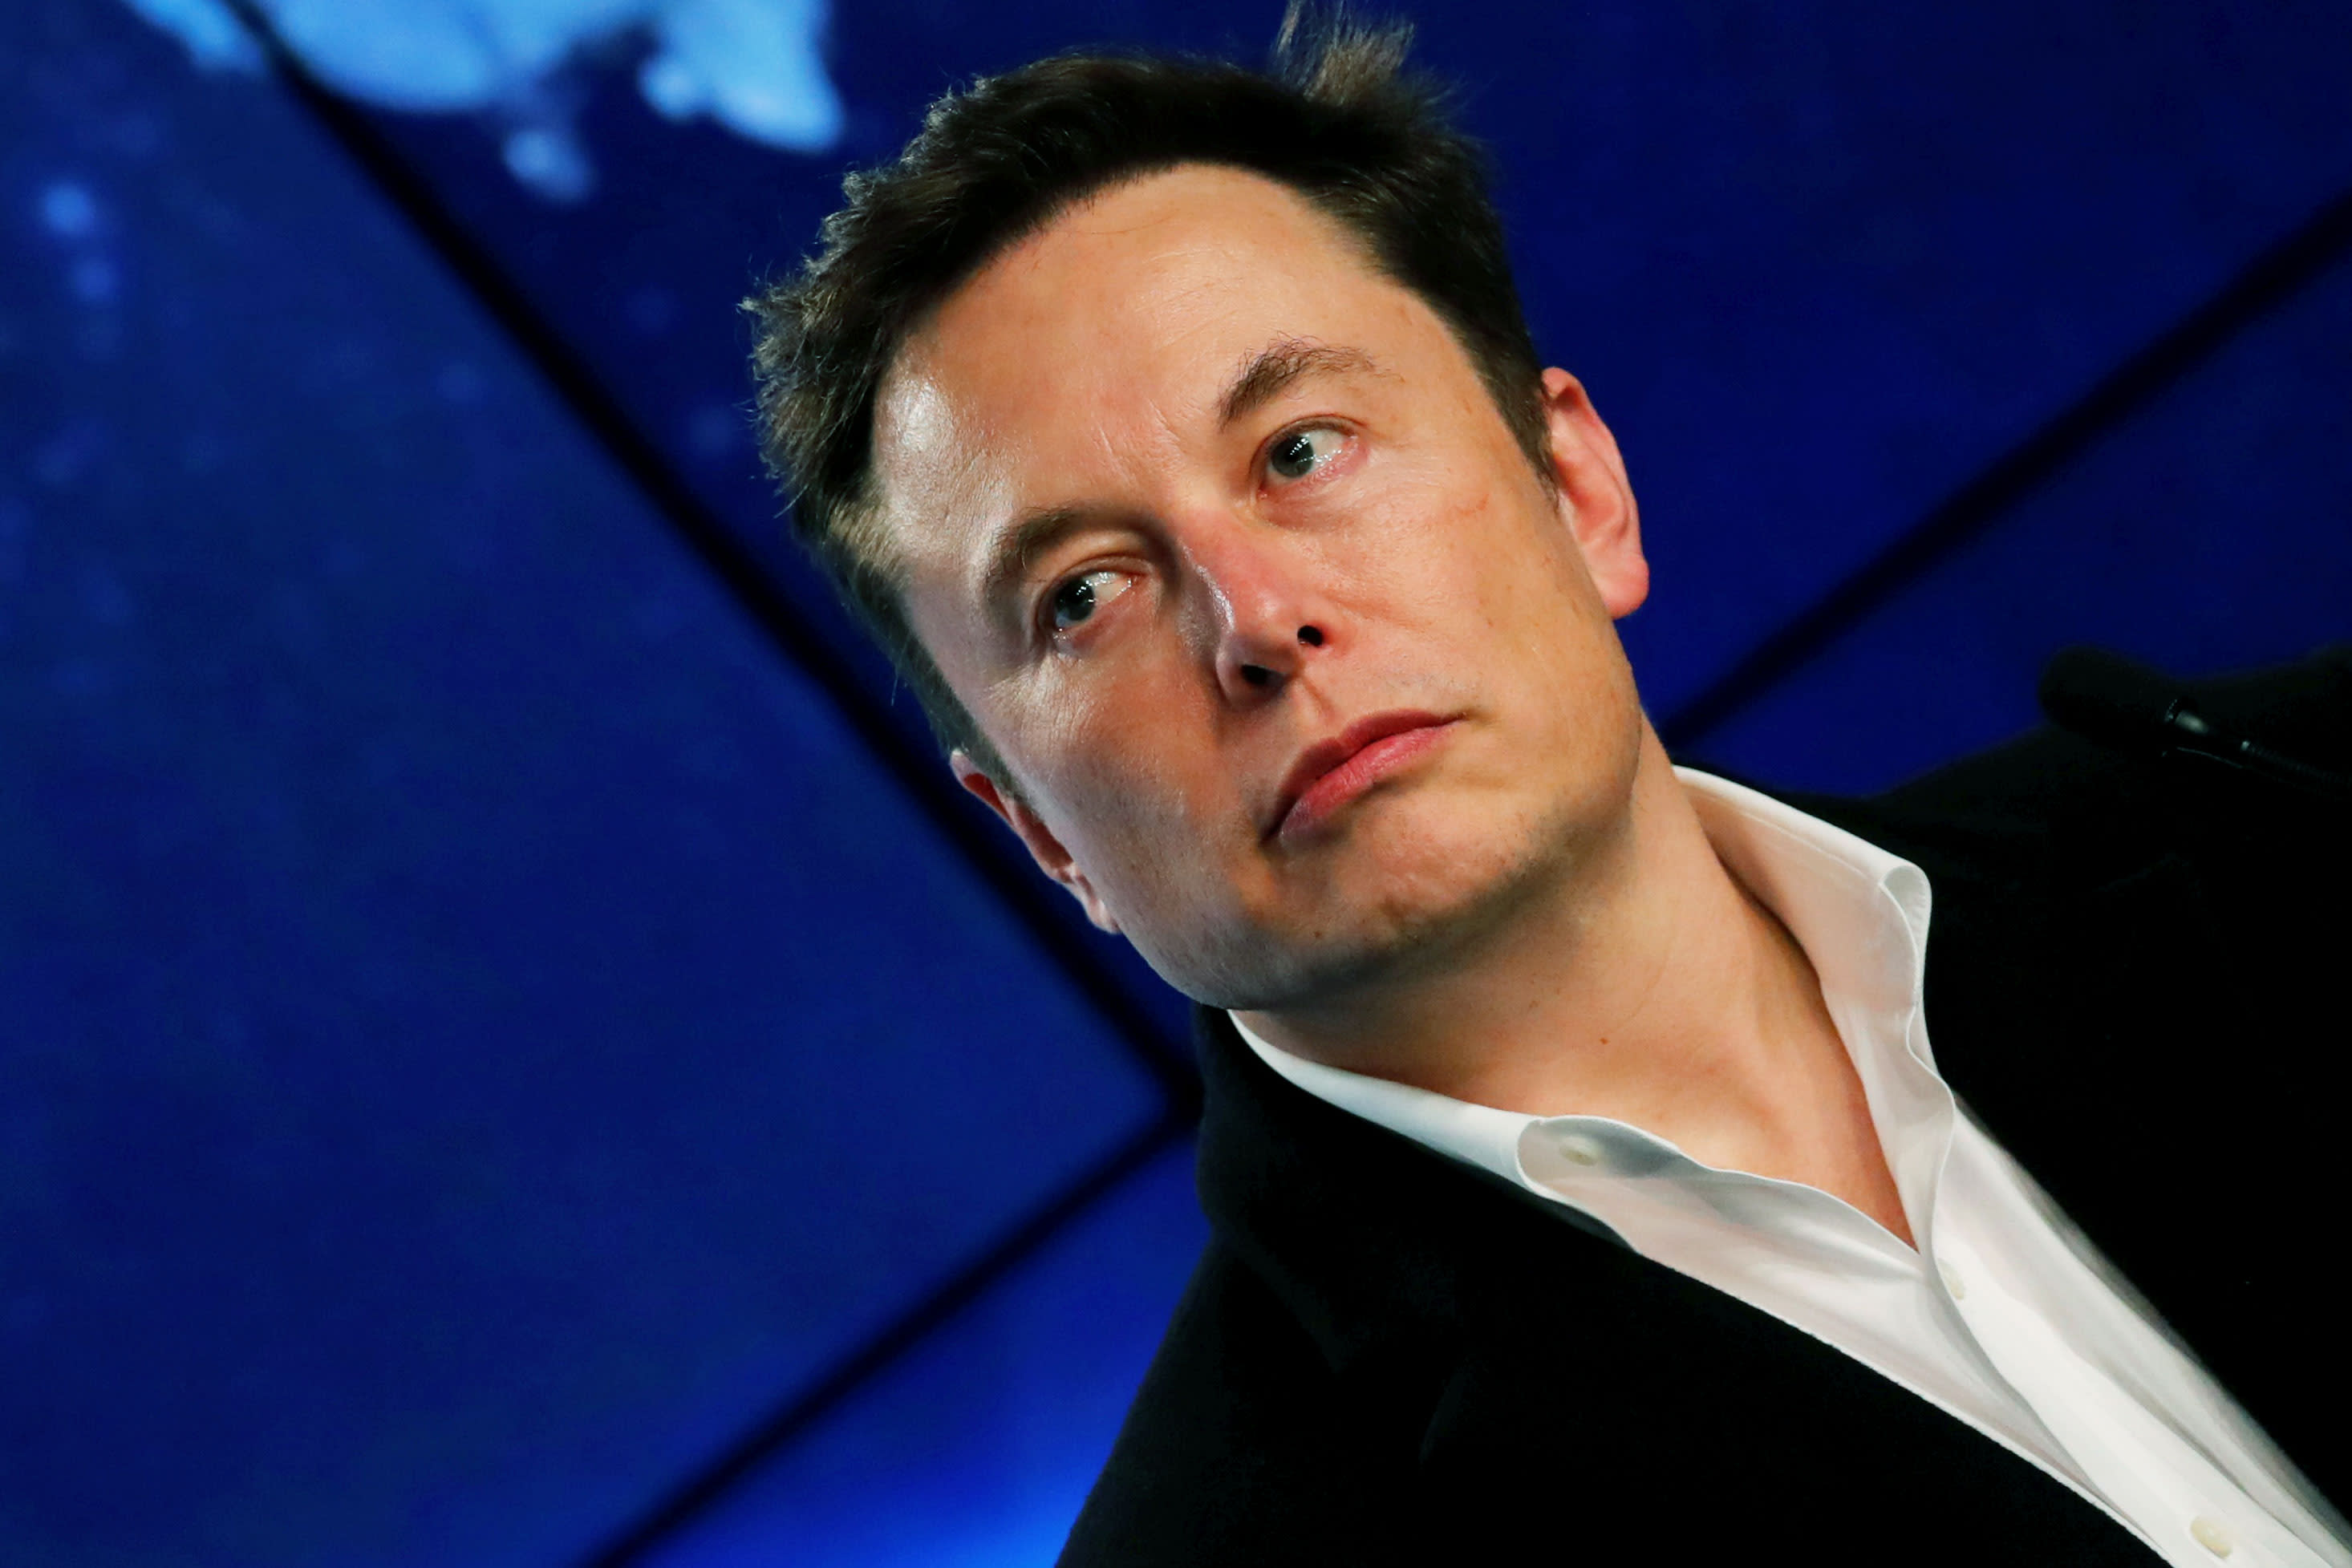 Tesla to Raise even More Capital than Expected, Including a Bigger Share Purchase by Elon Musk